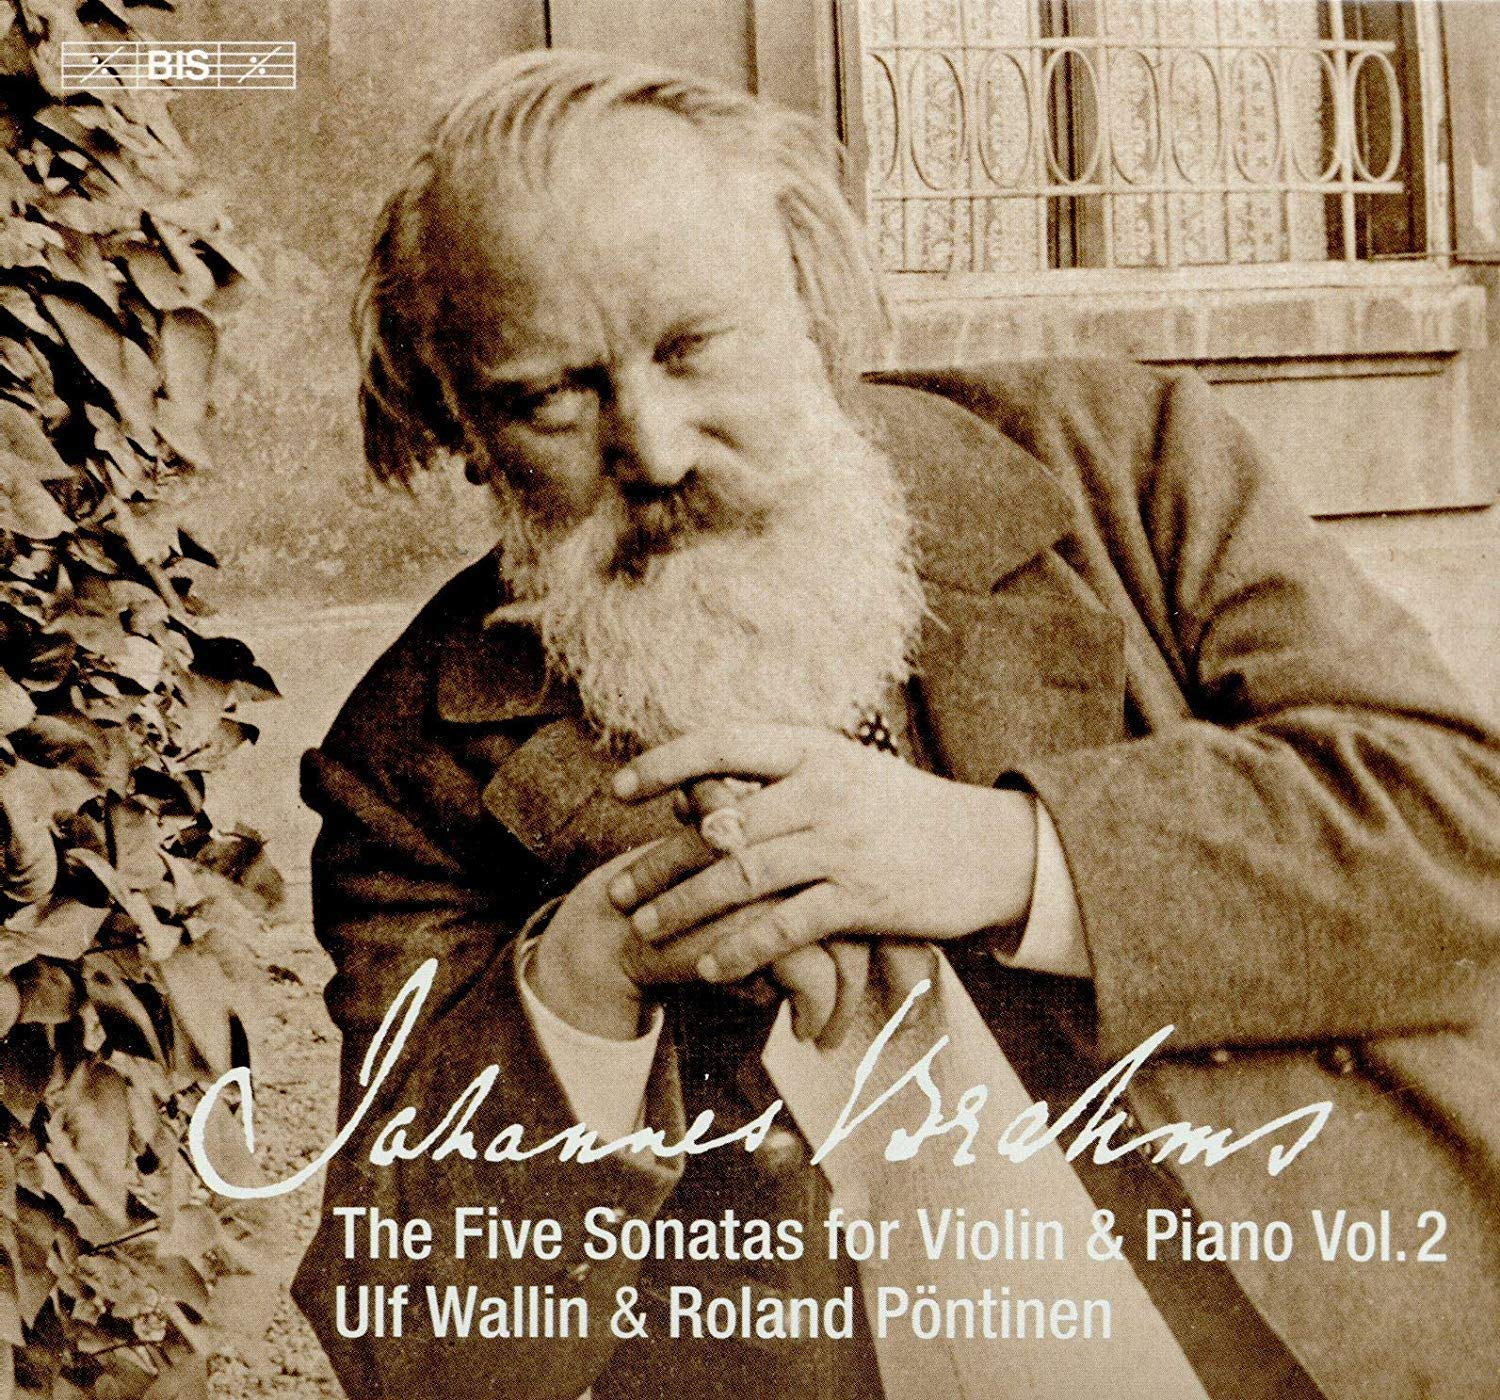 Review of BRAHMS Violin Sonatas Vol 2 (Ulf Wallin)